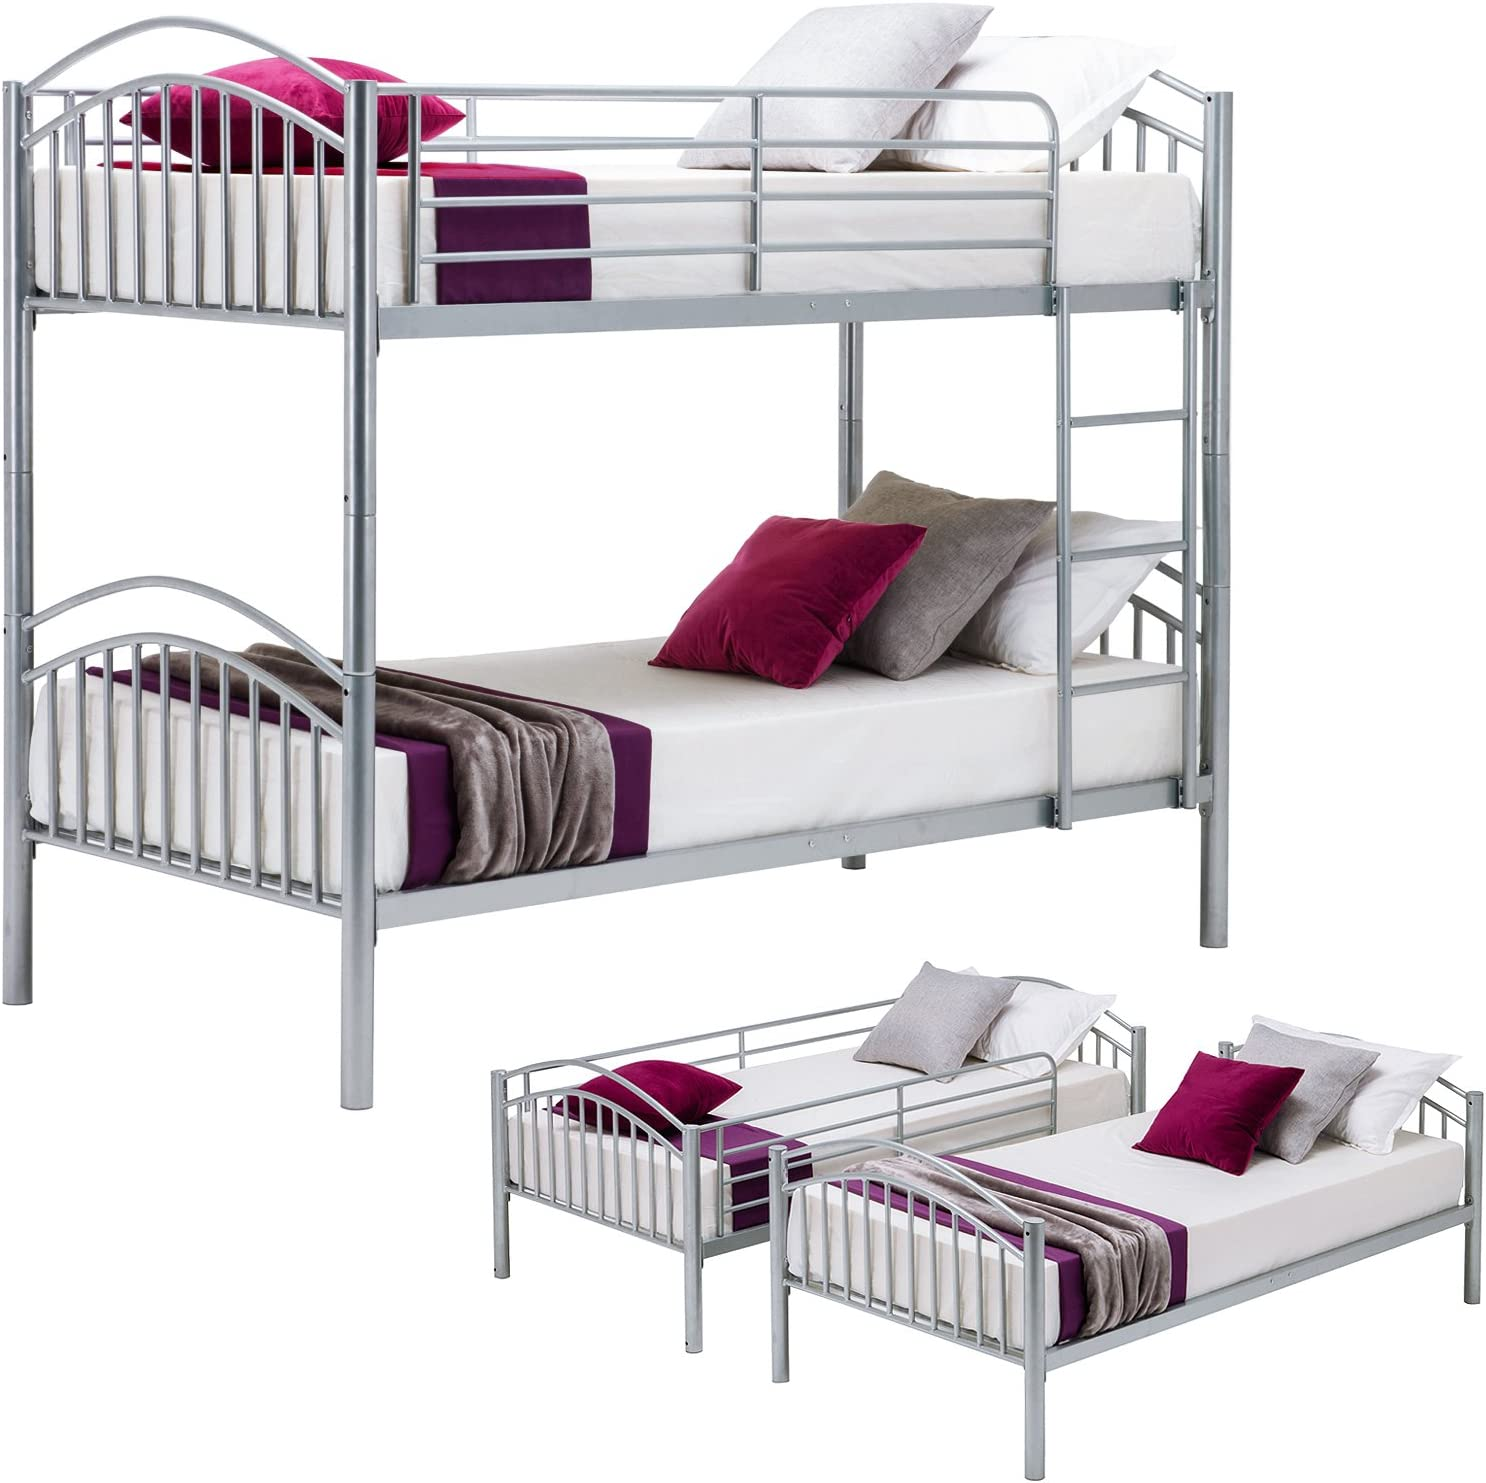 Download Metal Bunk Beds PNG